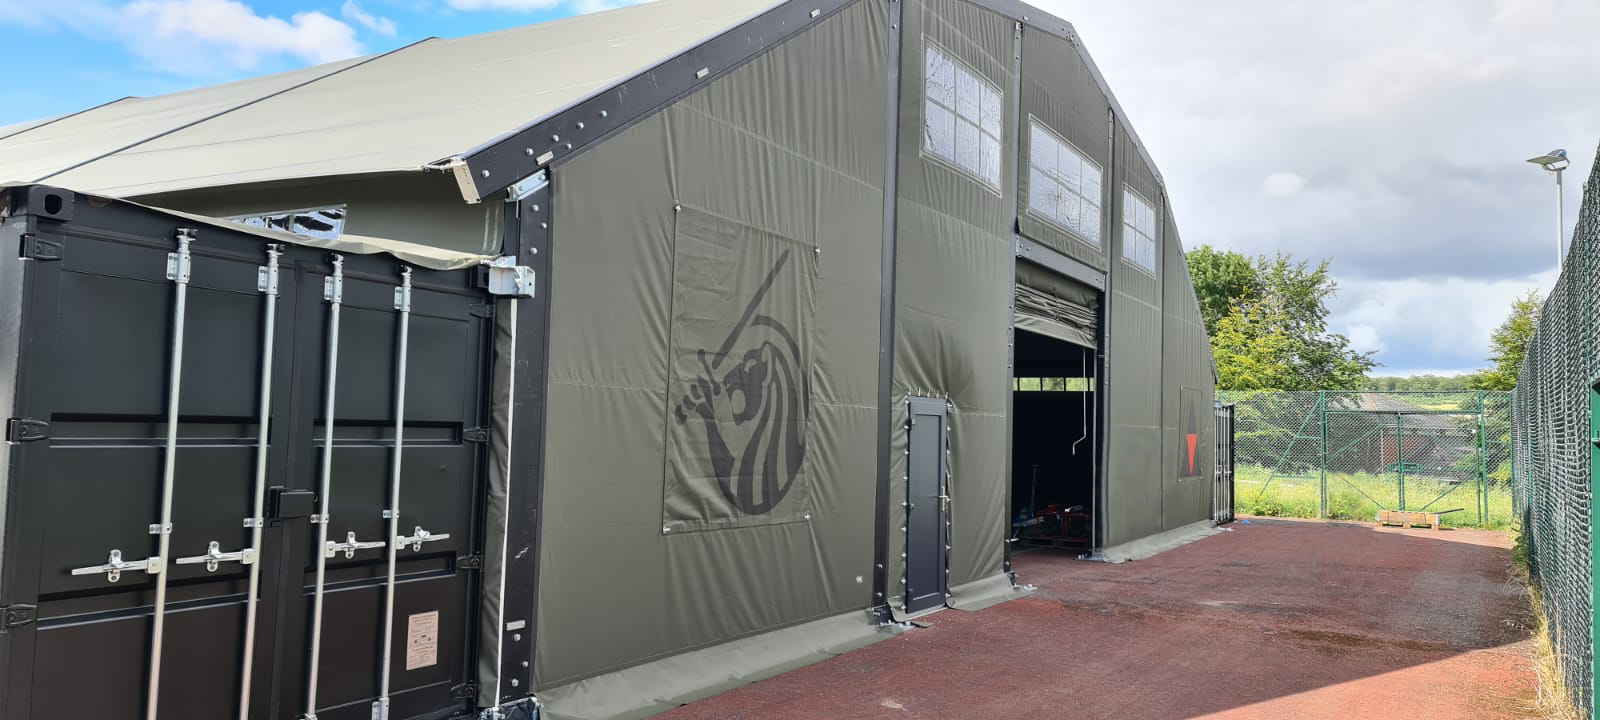 Container Building for British Army with aluminium structure to support fabric roof